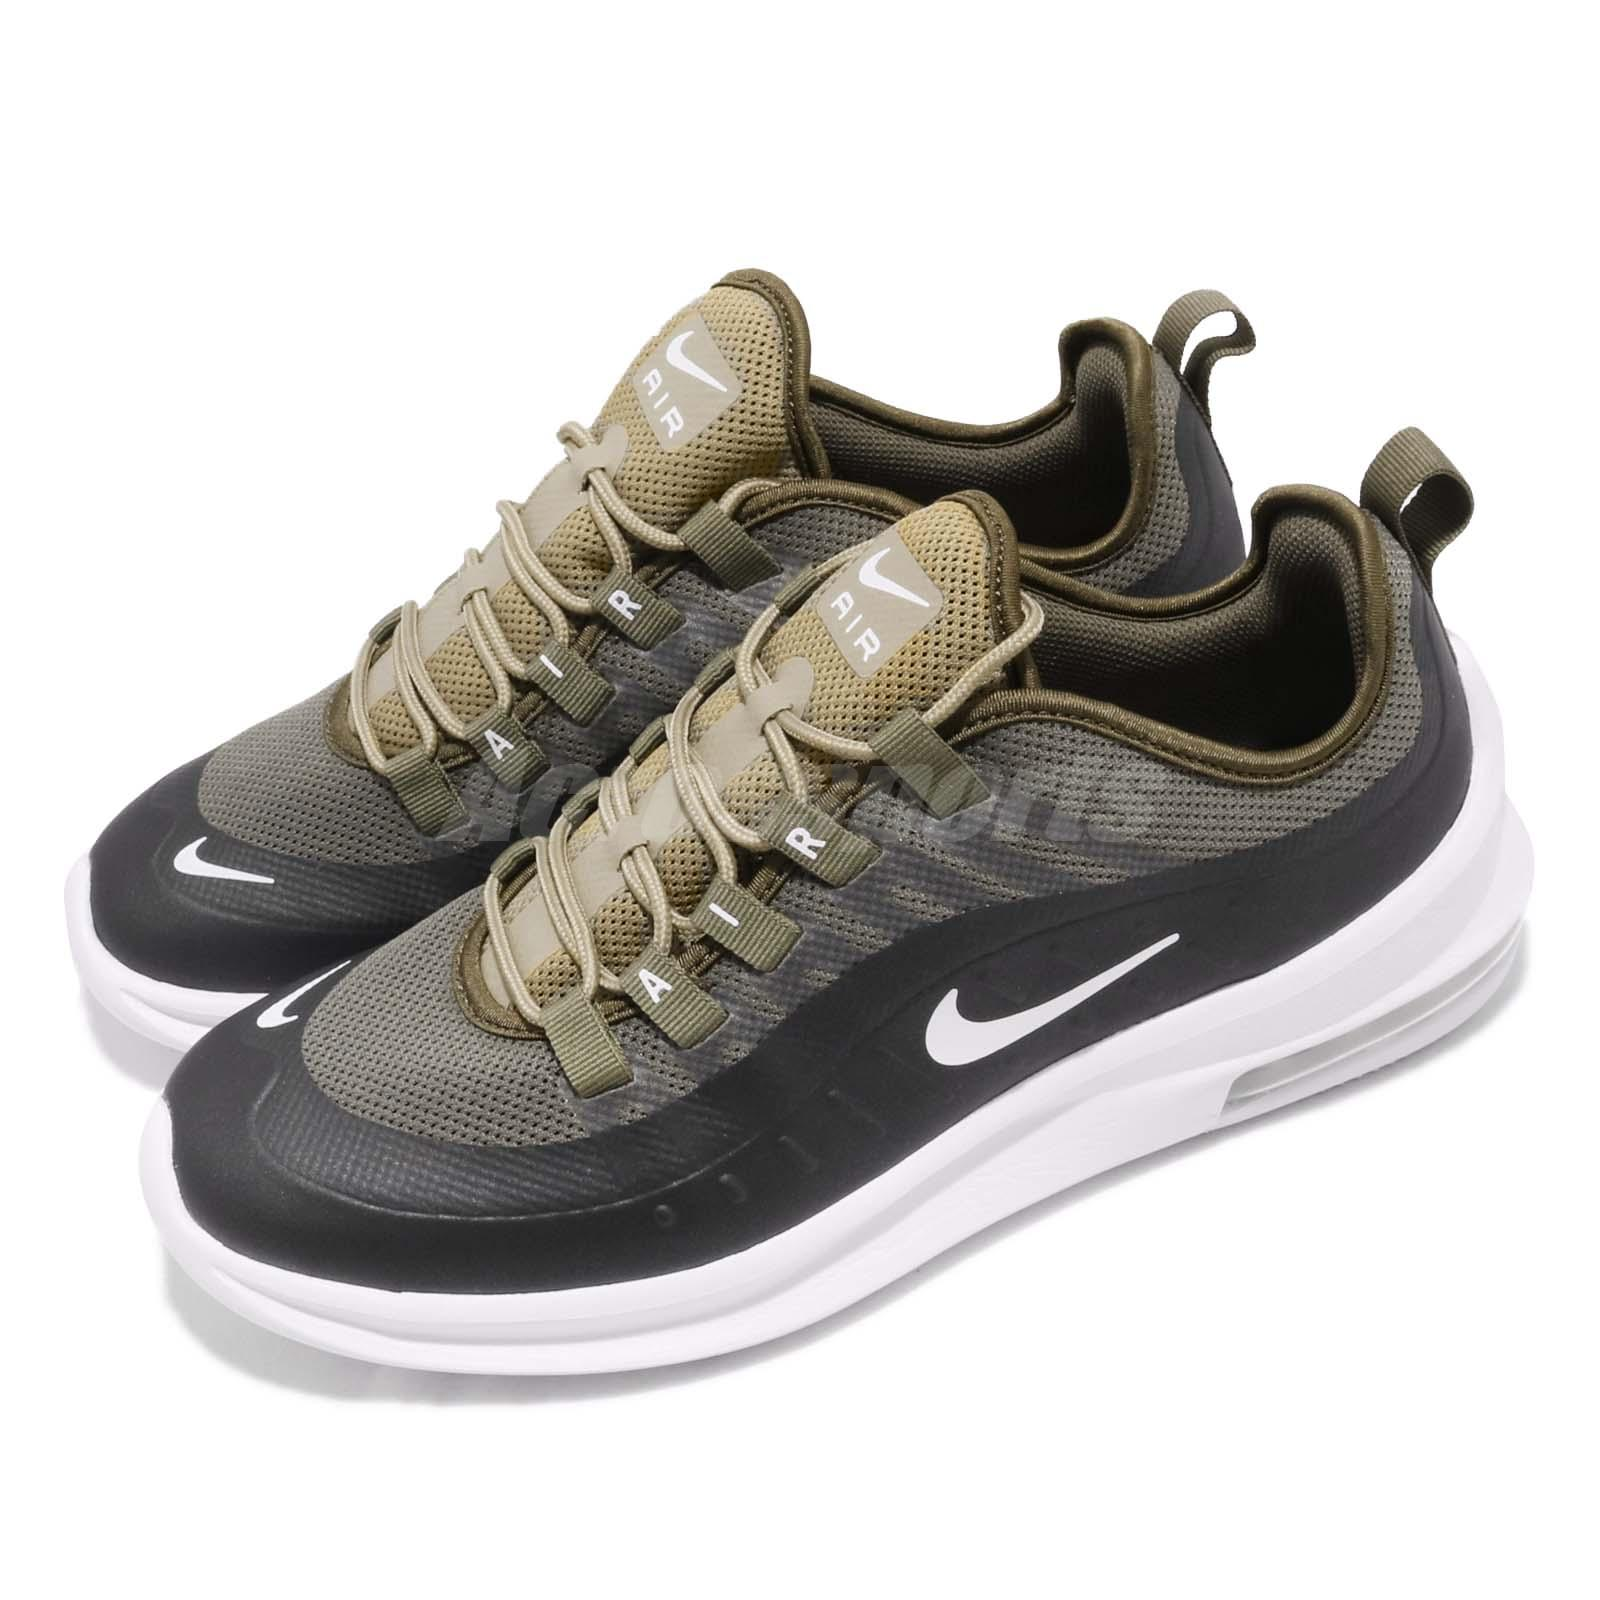 premium selection 7797a 84c6e Pour Blanc Moyenne Chaussures Aa2146 Max Course De Axis Homme Olive Air  Vert Nike T1Ytvqwv